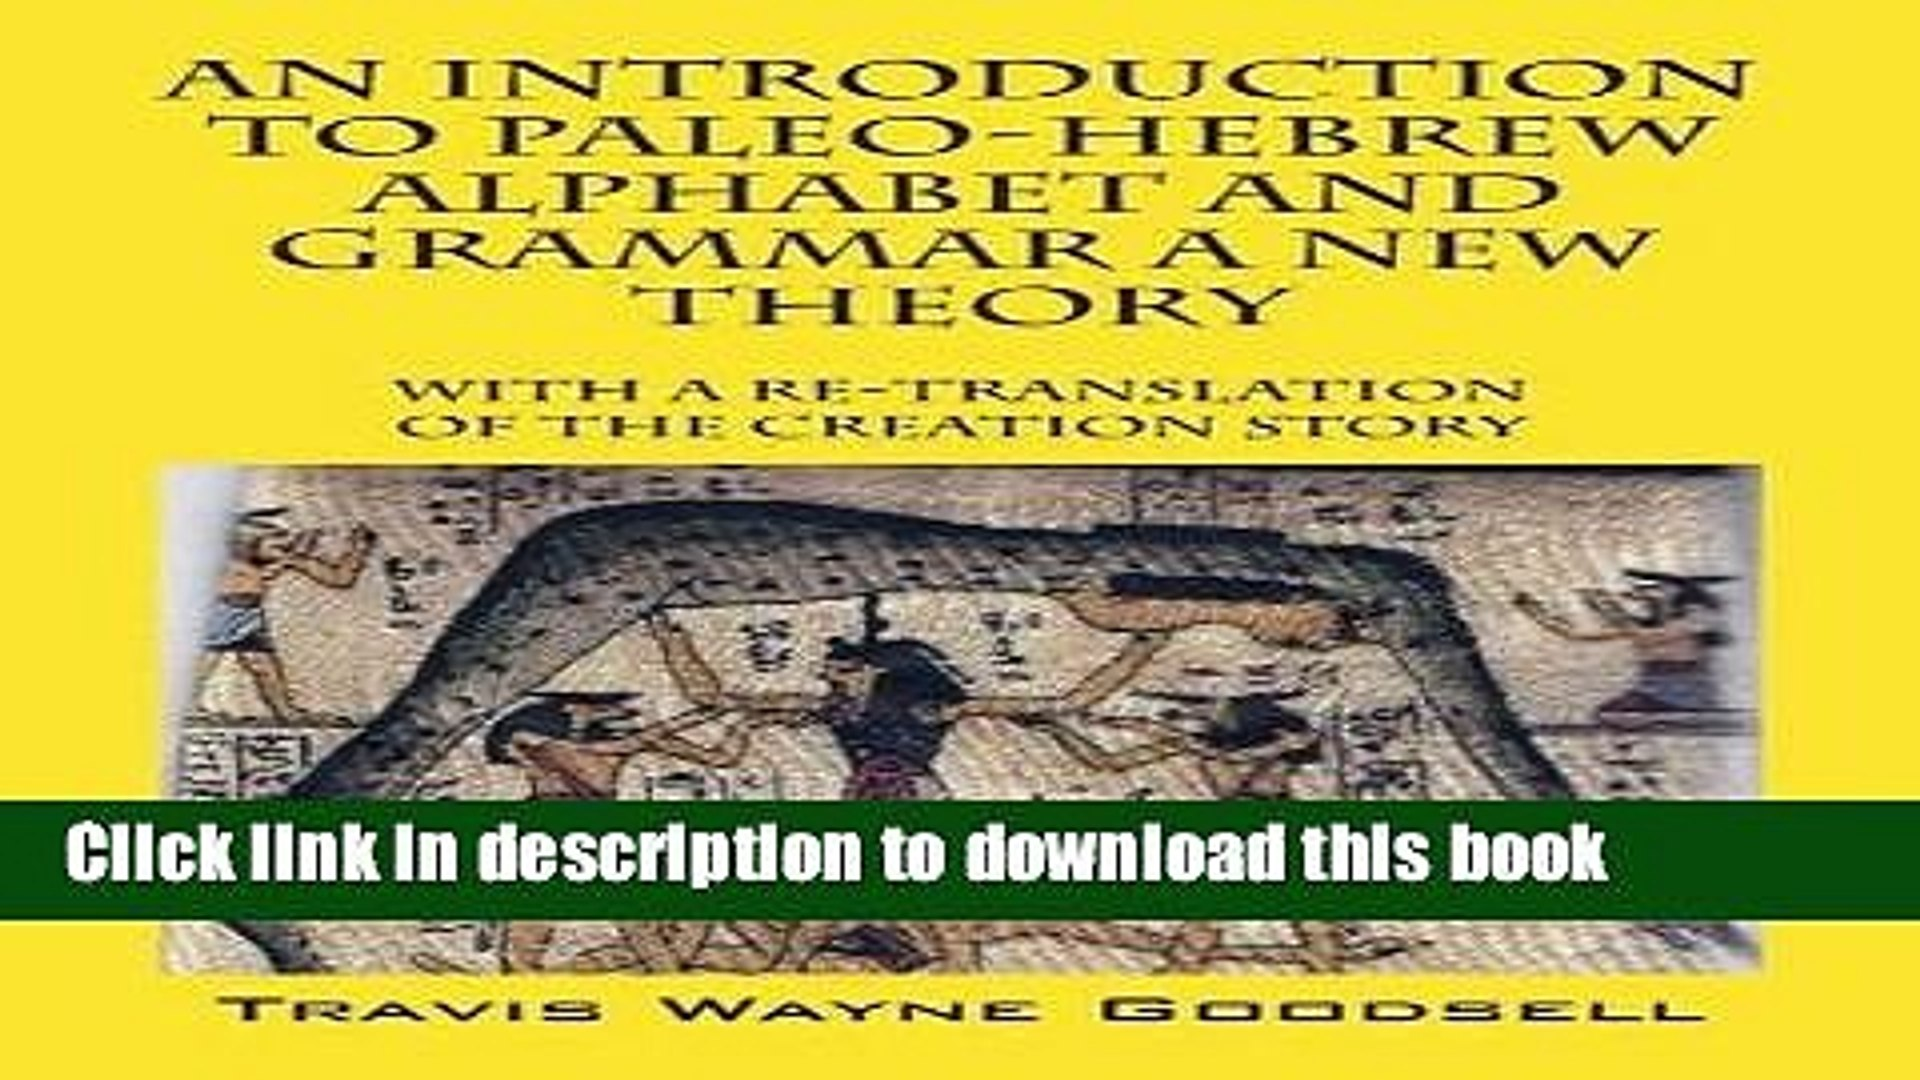 Download An Introduction to Paleo-Hebrew Alphabet and Grammar A New Theory:  With a Re-Translation